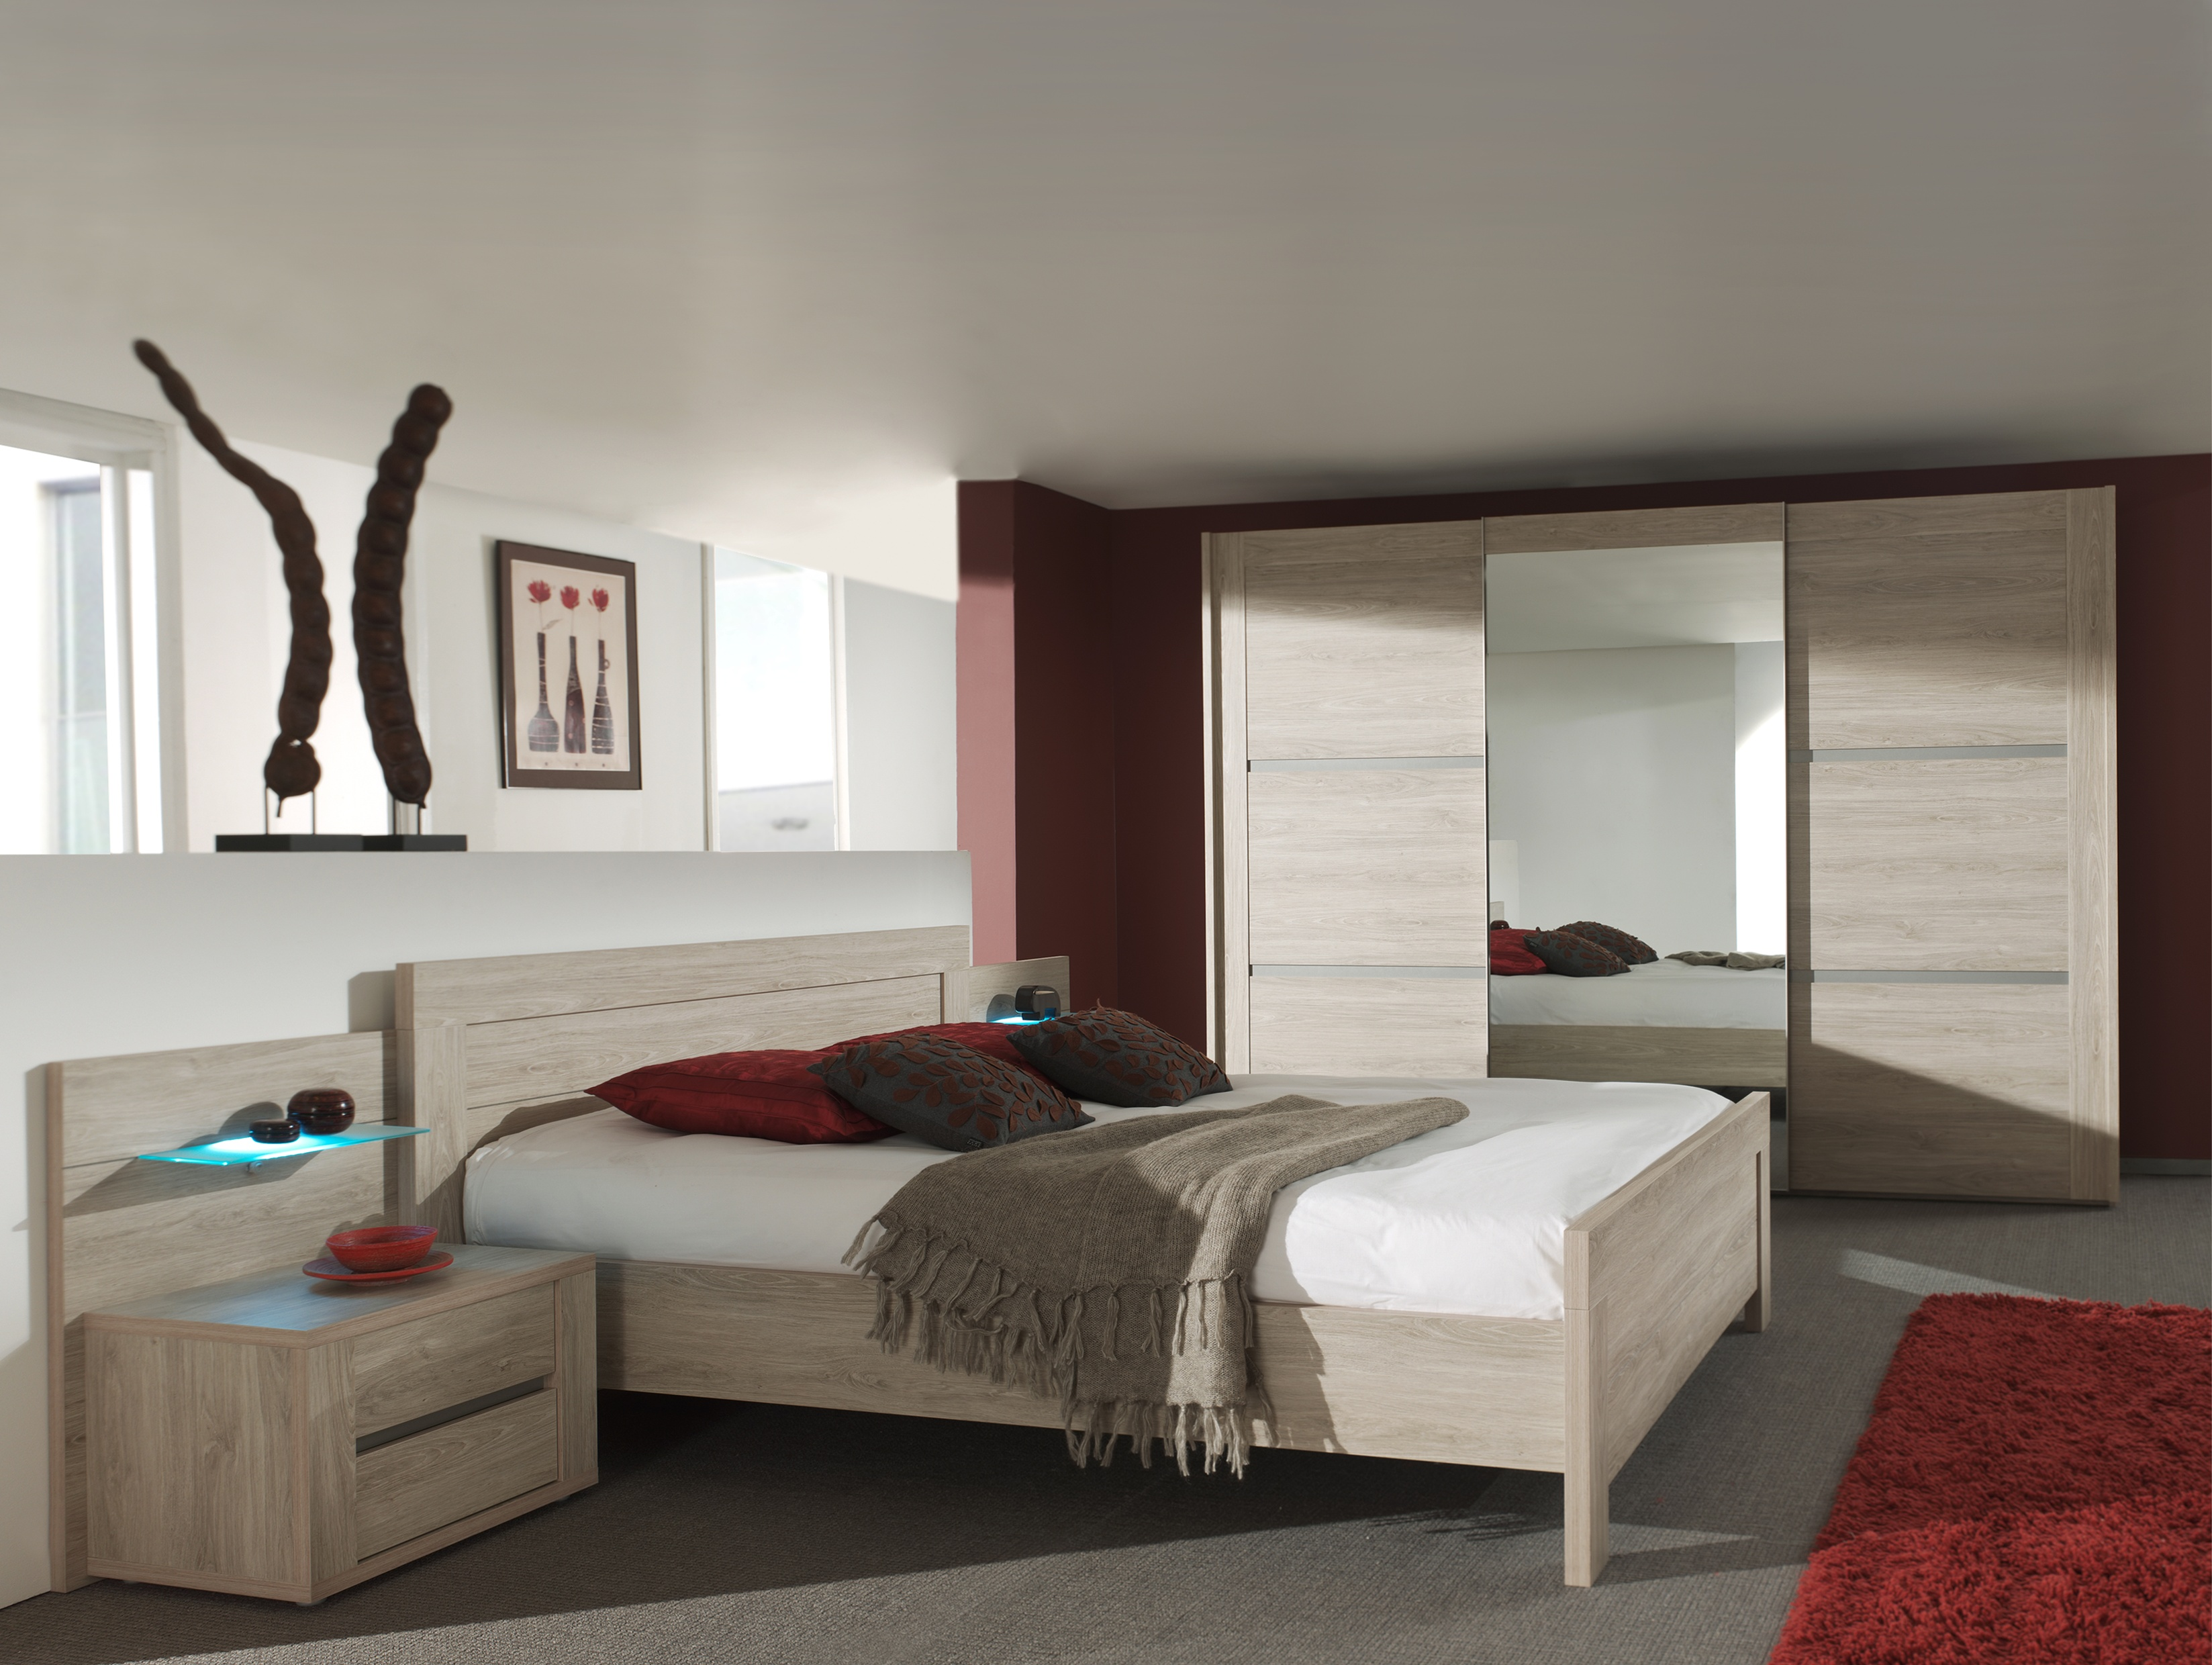 Chambre rocca mobilier confort for Chambre mobilier